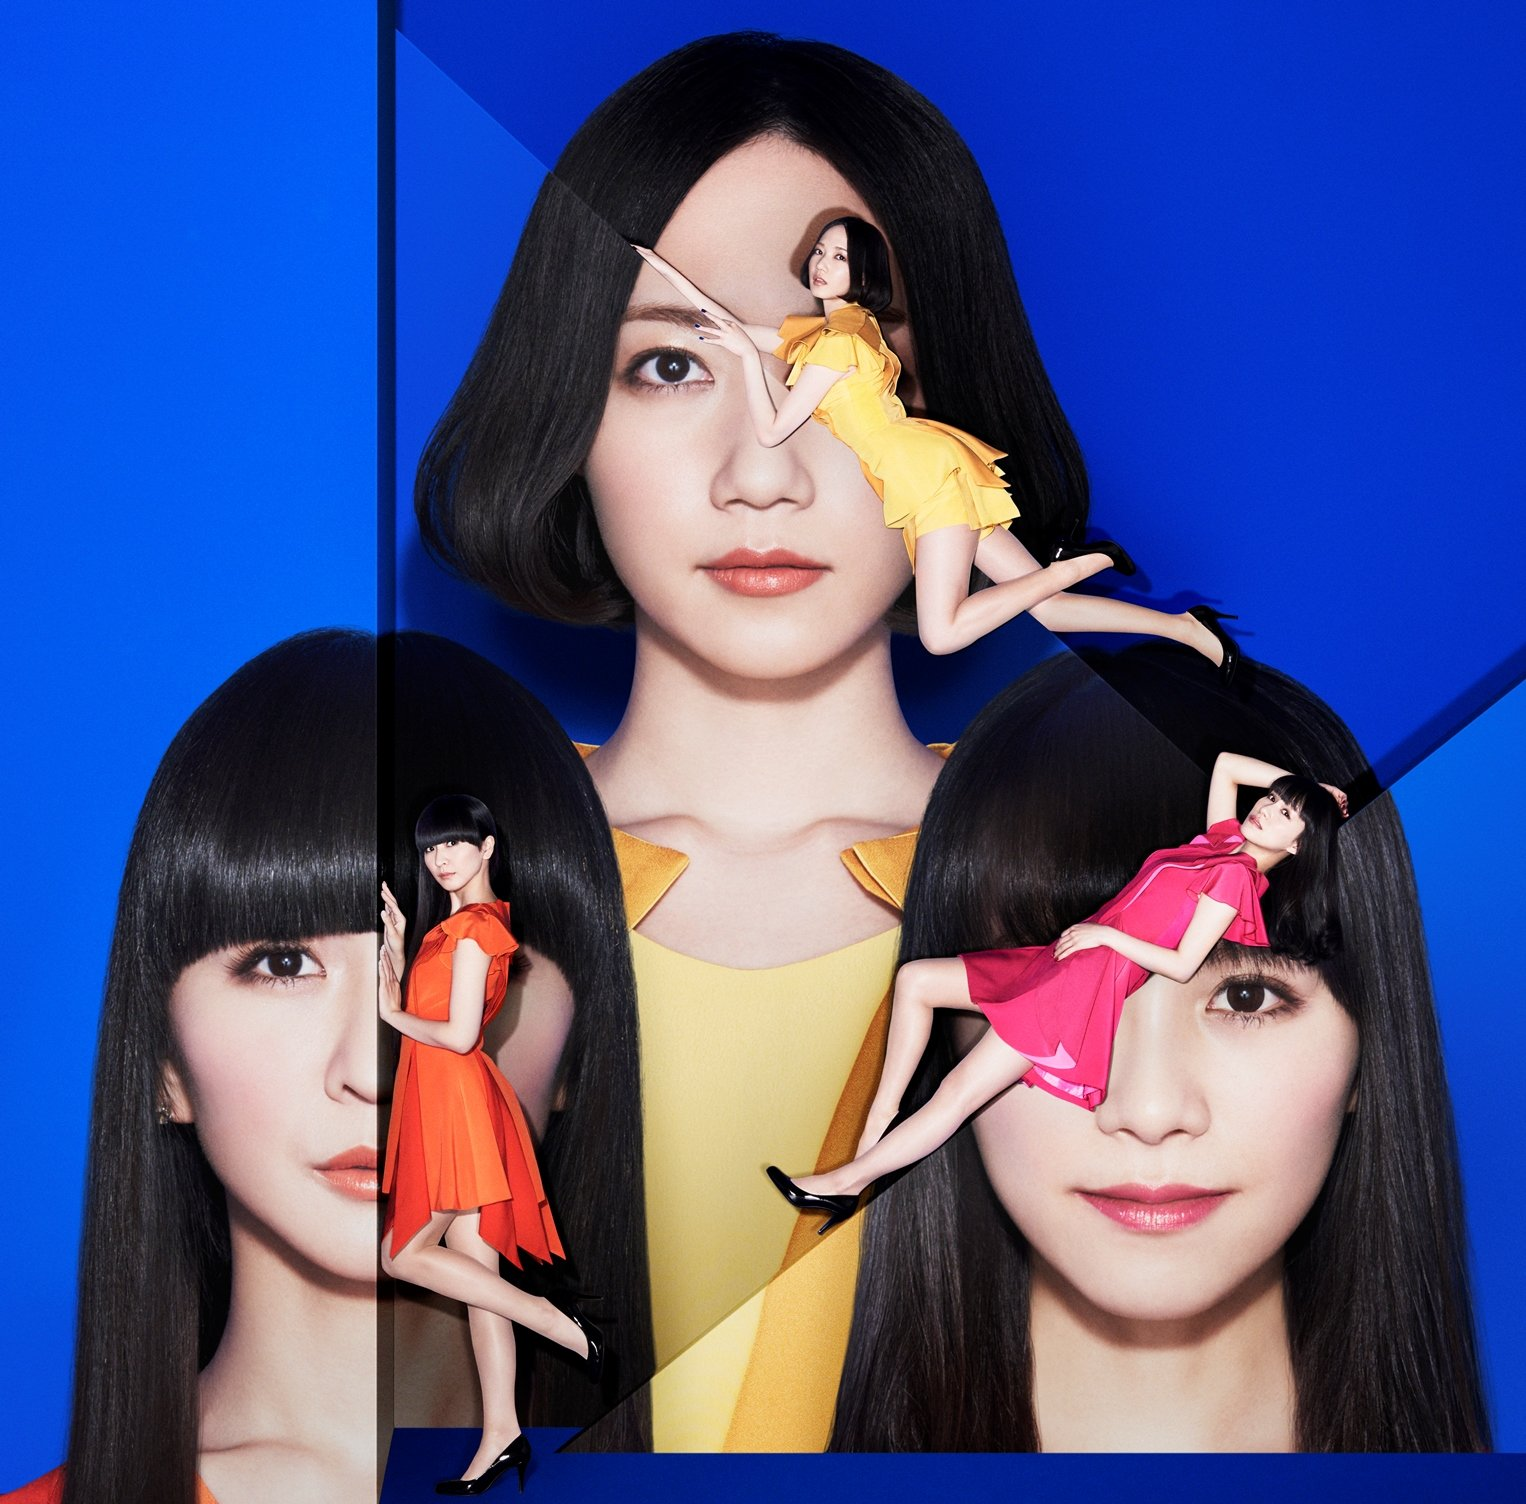 20160404.01.02 Perfume - Cosmic Explorer (Web edition) (M4A) cover 1.jpg